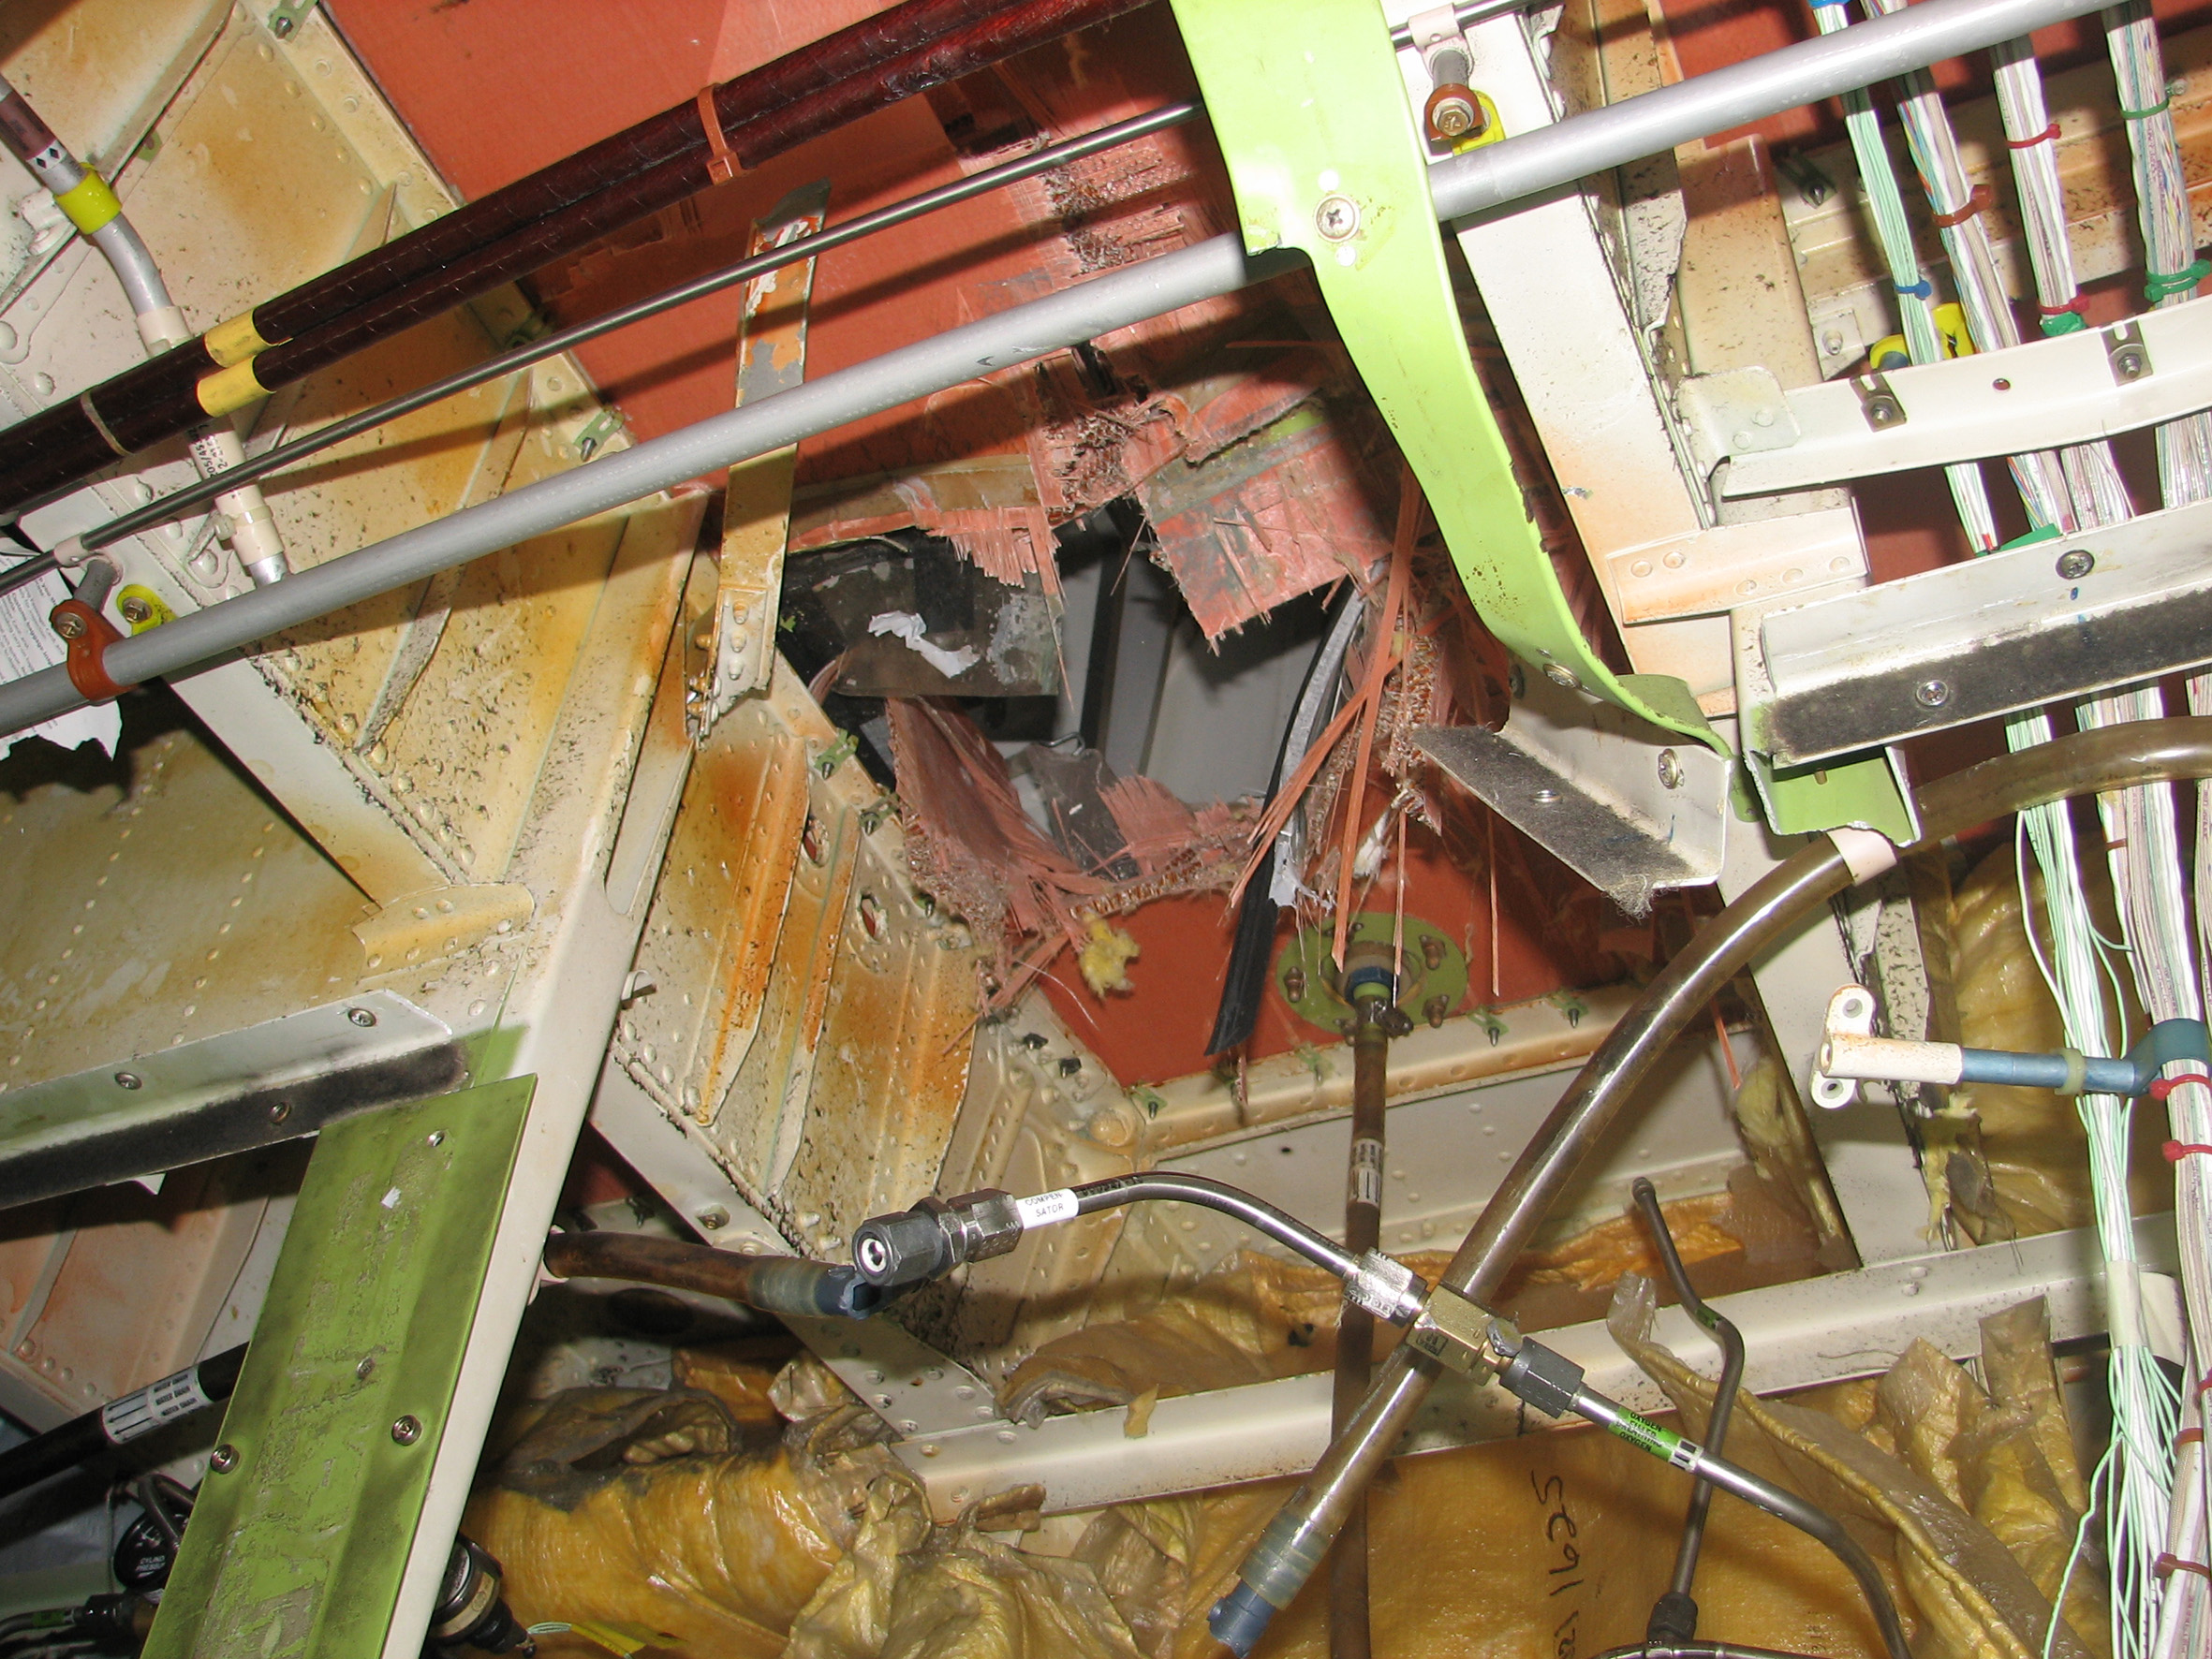 Investigation: AO-2008-053 - Oxygen cylinder failure and